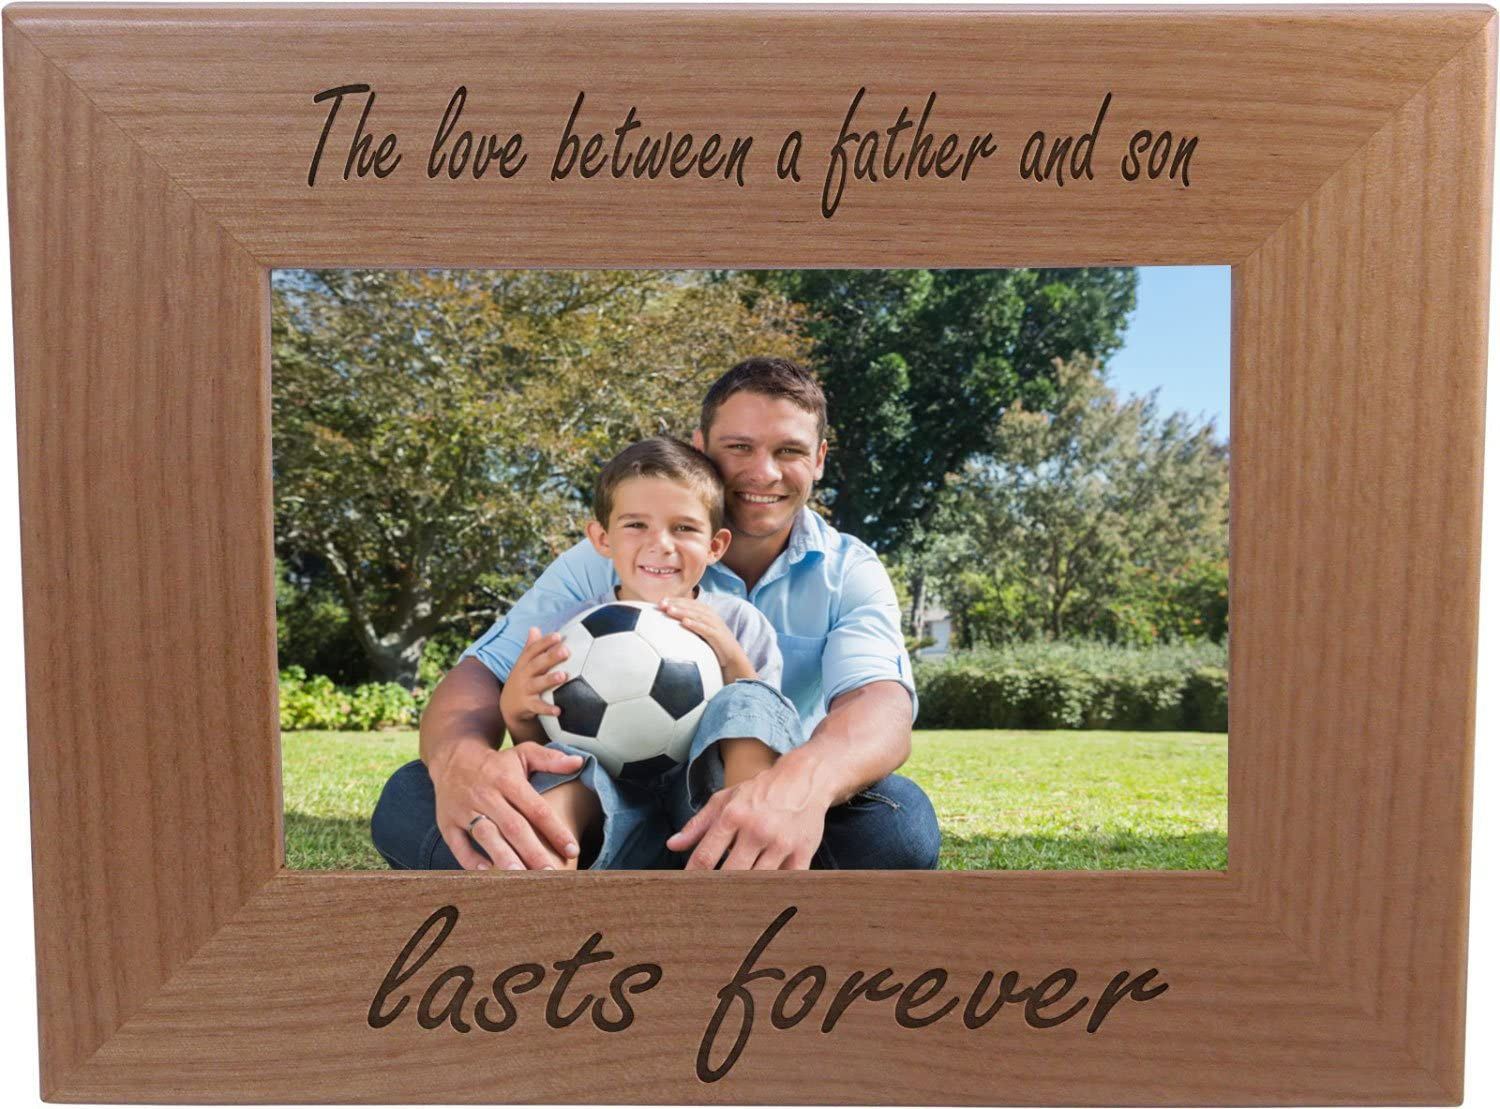 CustomGiftsNow The Love 5 ☆ popular Between A Father N Max 53% OFF and Forever Lasts Son